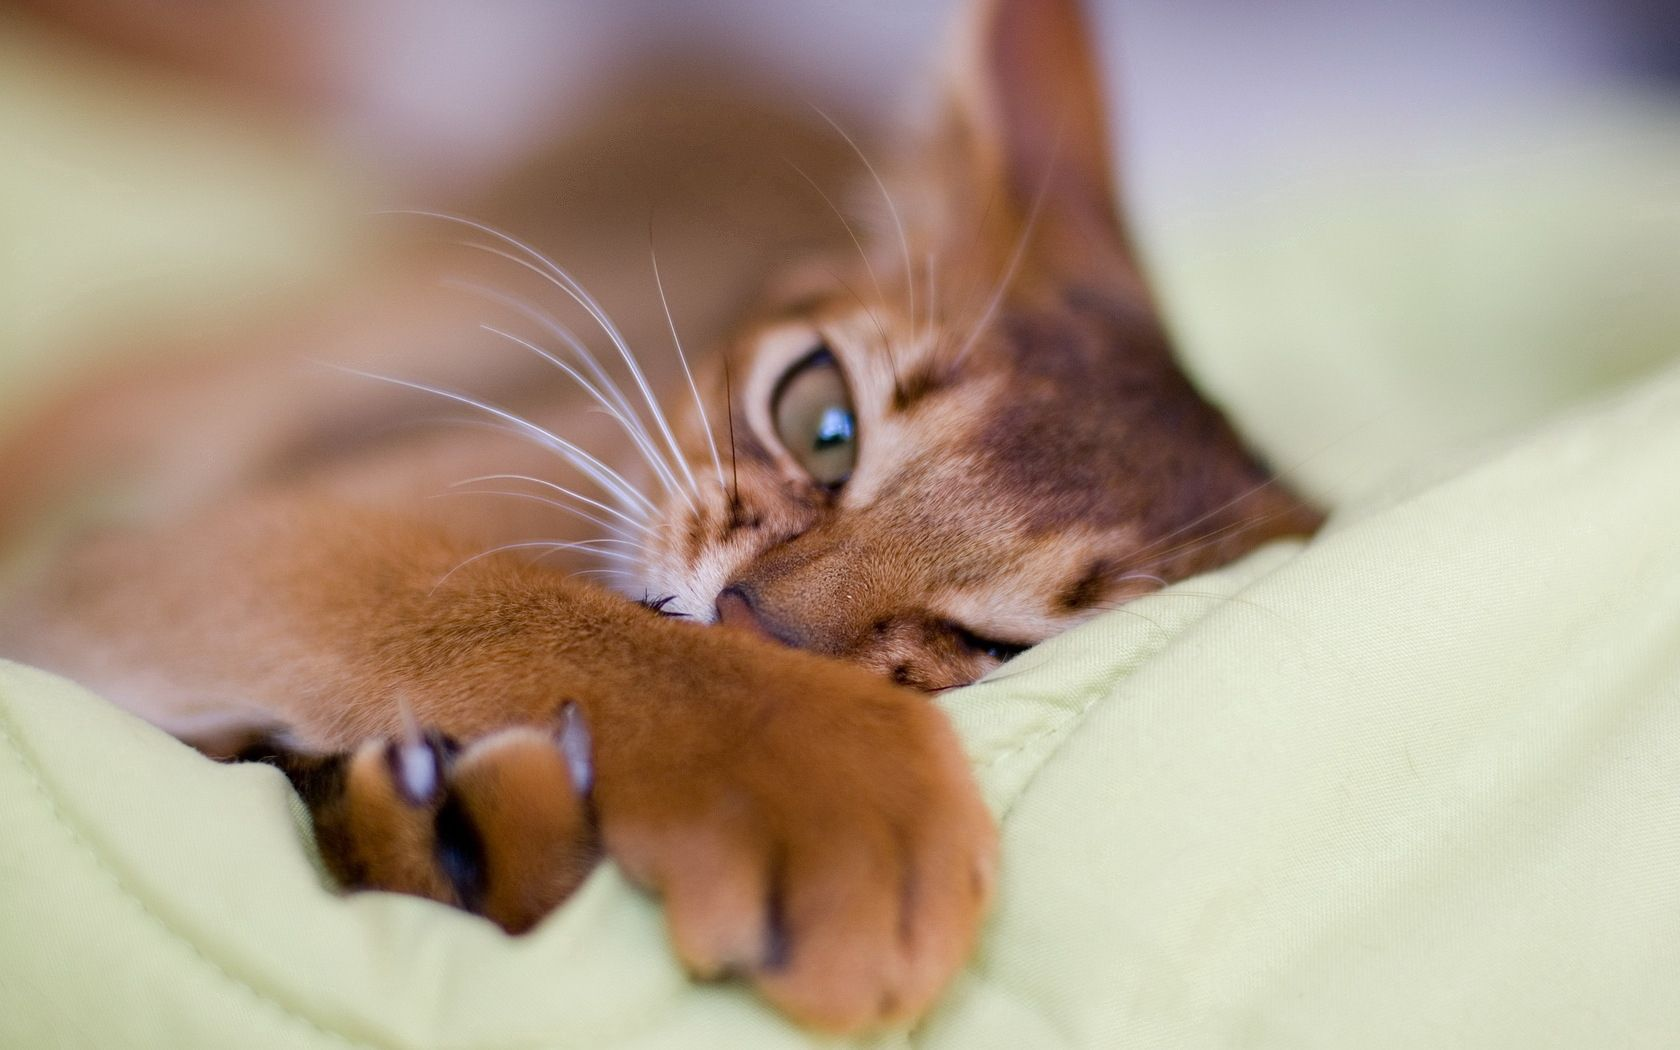 74208 download wallpaper Animals, Cat, Claws, Paw, Muzzle screensavers and pictures for free